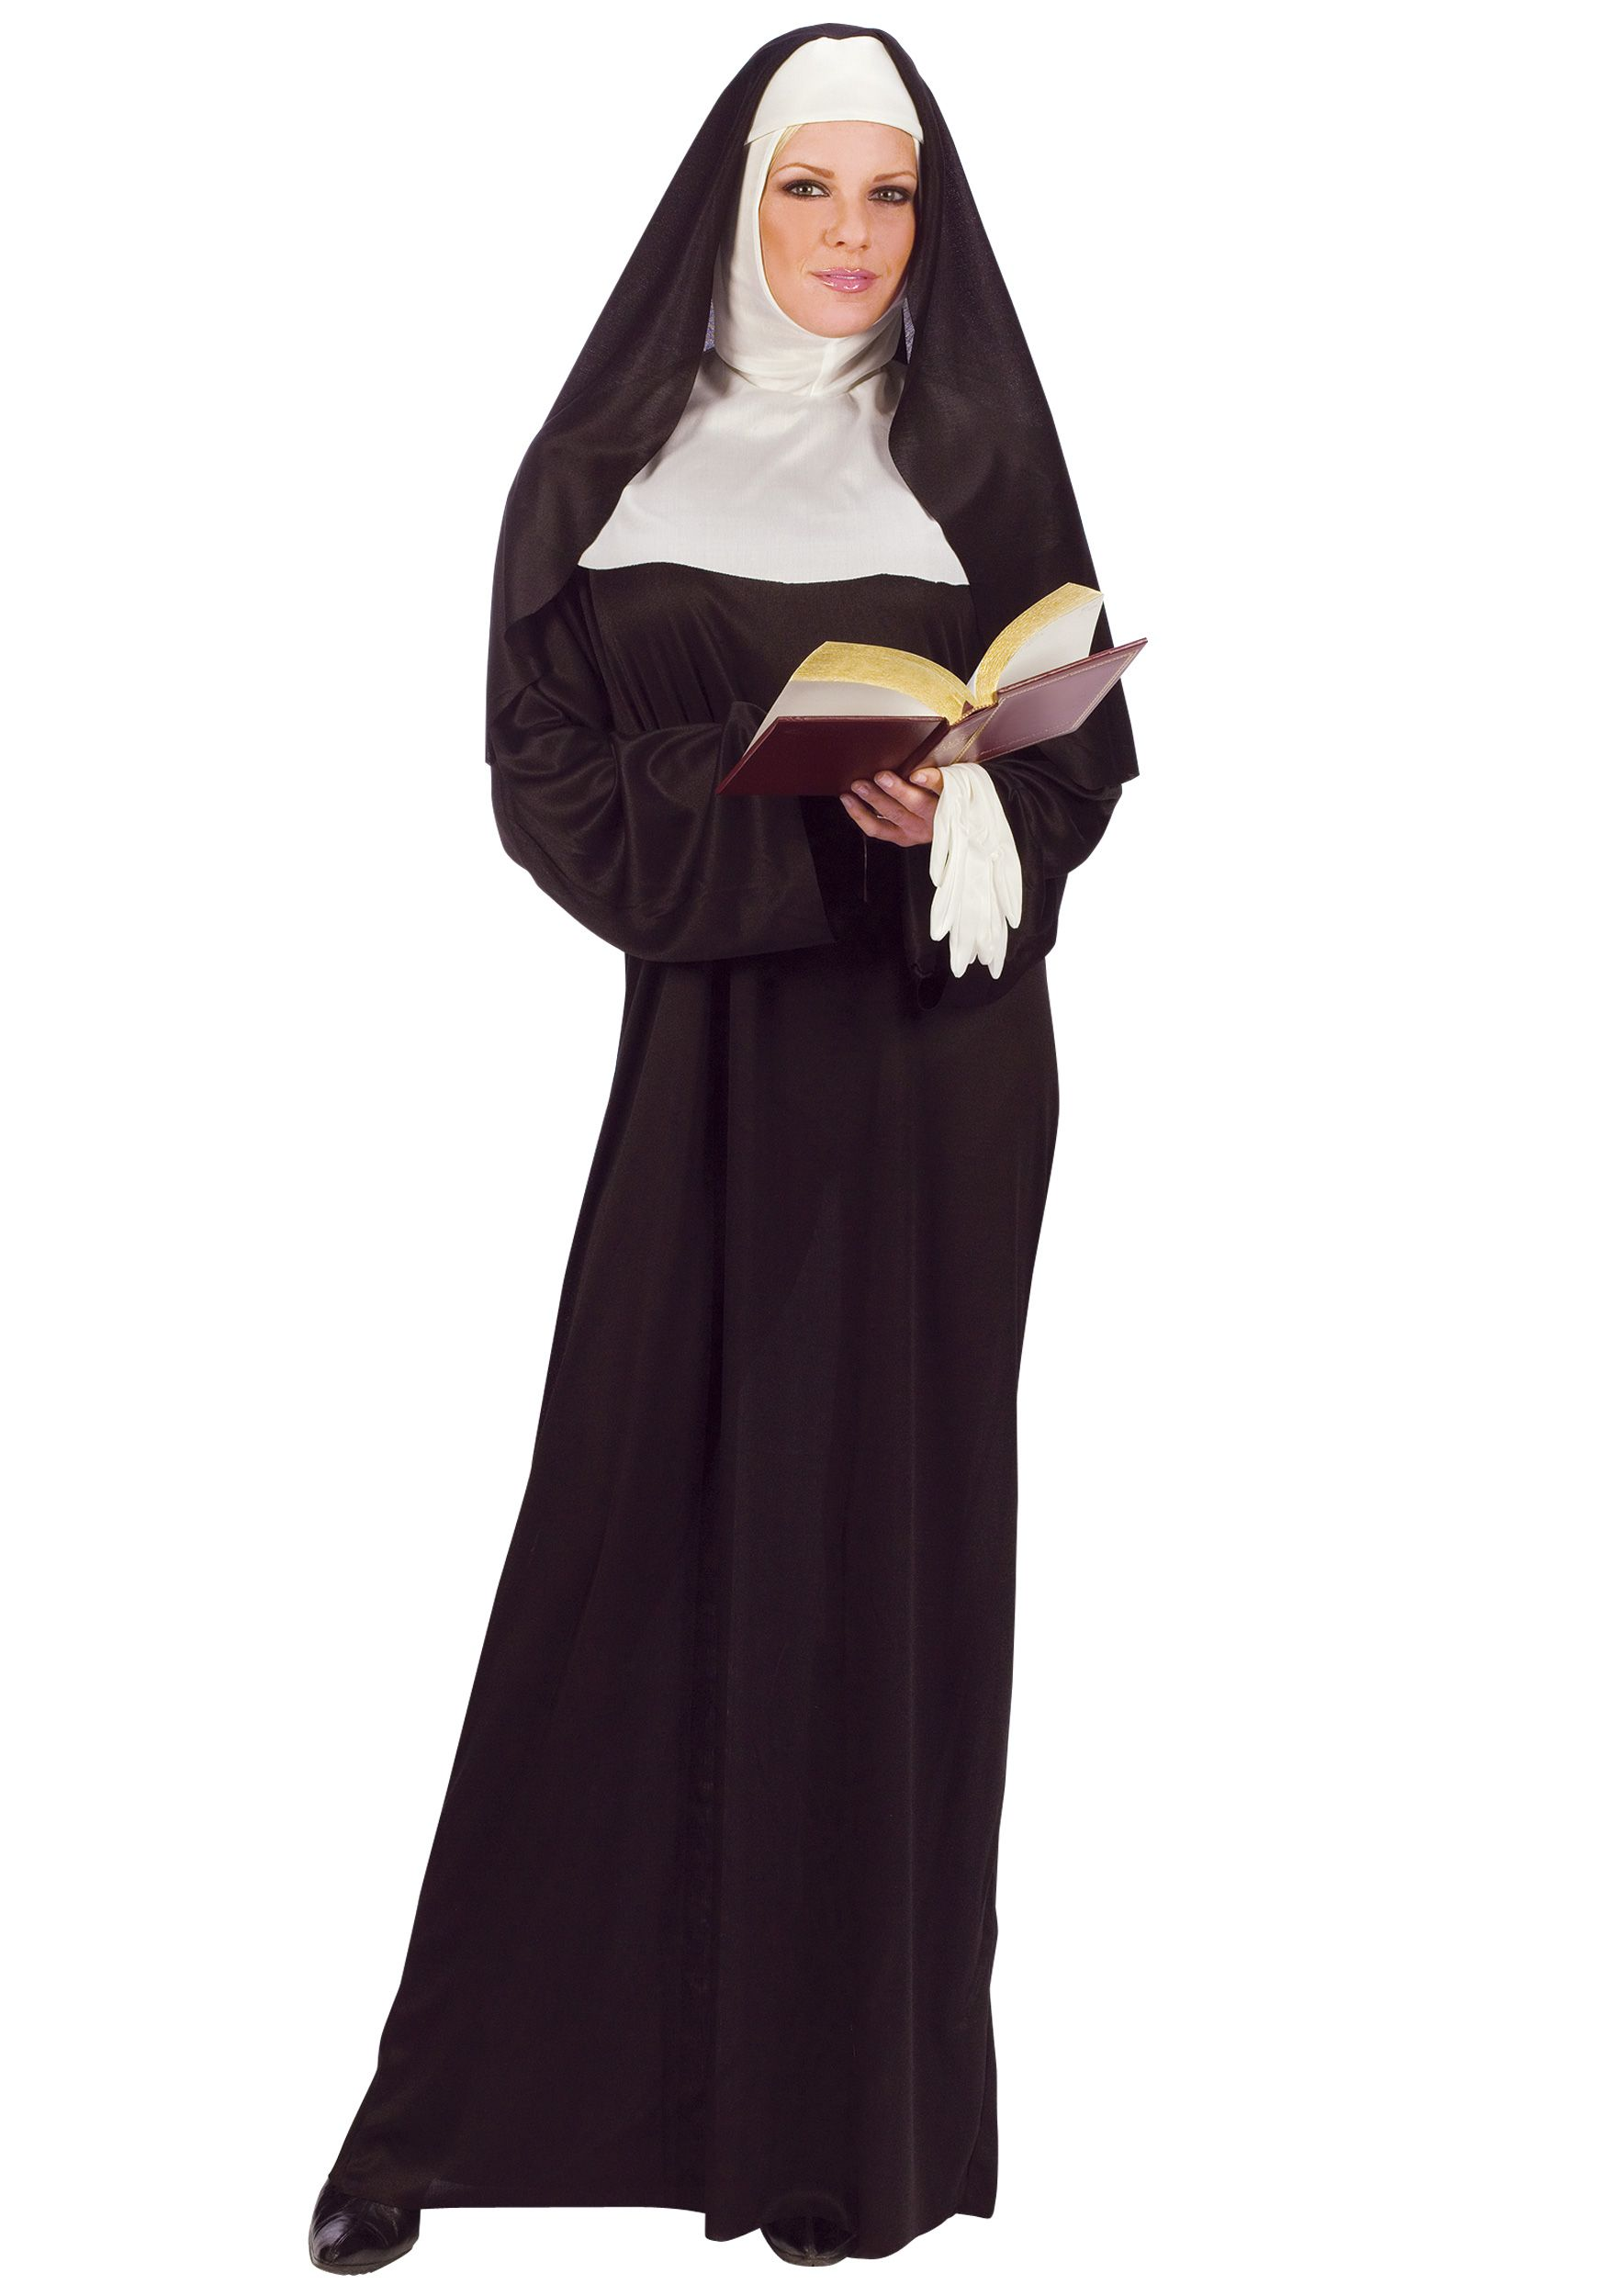 Adults Nun Religious Sister Act Convent Ladies Fancy Dress Outfit